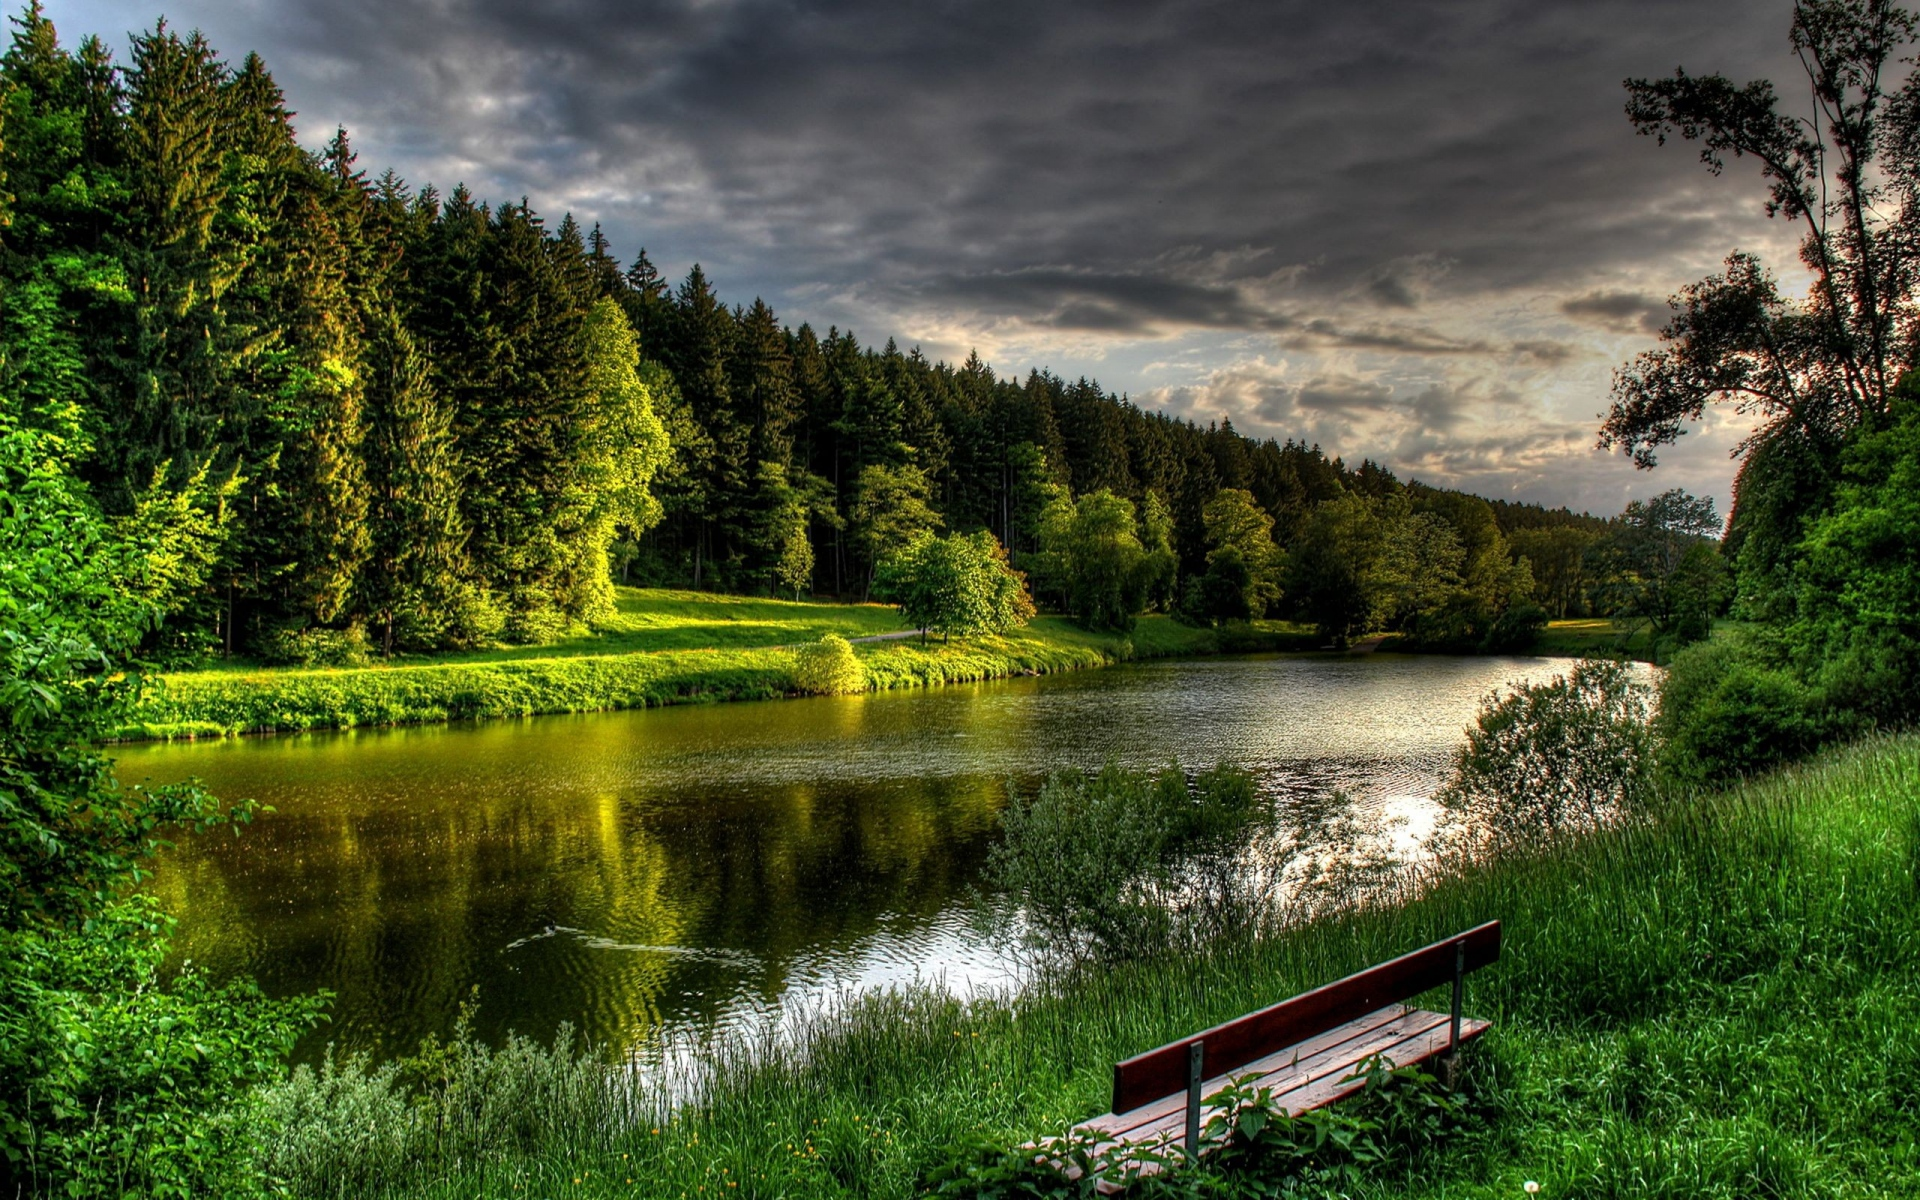 Misty Green Forest Nature River Beautiful 1ziw: Green Forest River Bench Grass Wallpapers